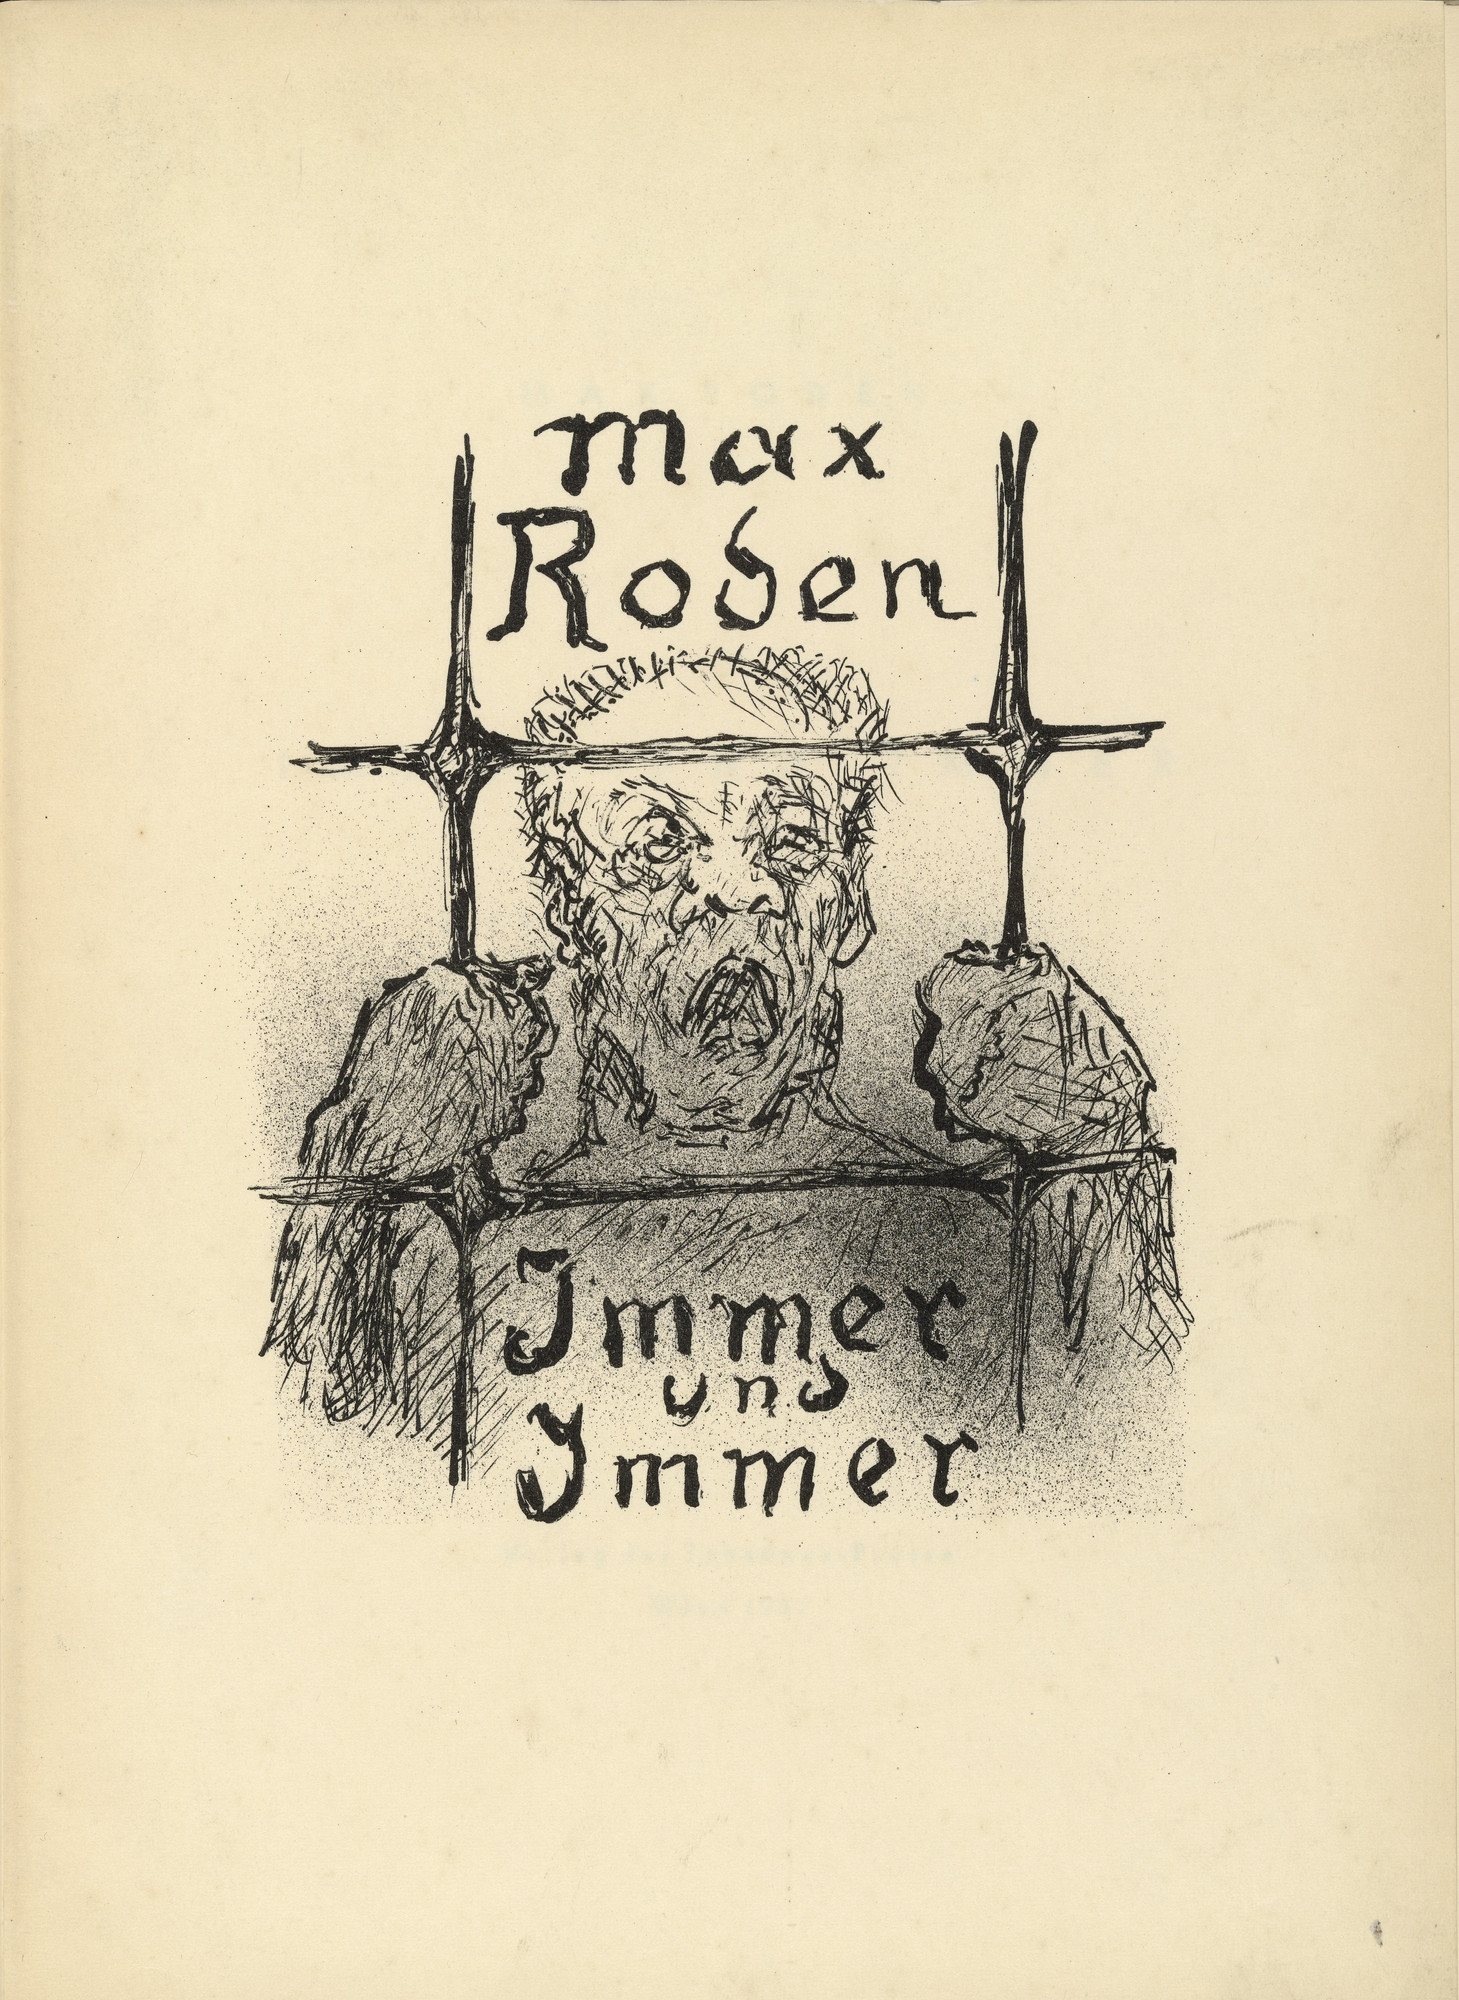 Alfred Kubin. Untitled (title page) from Immer und Immer (Again and Again). 1937